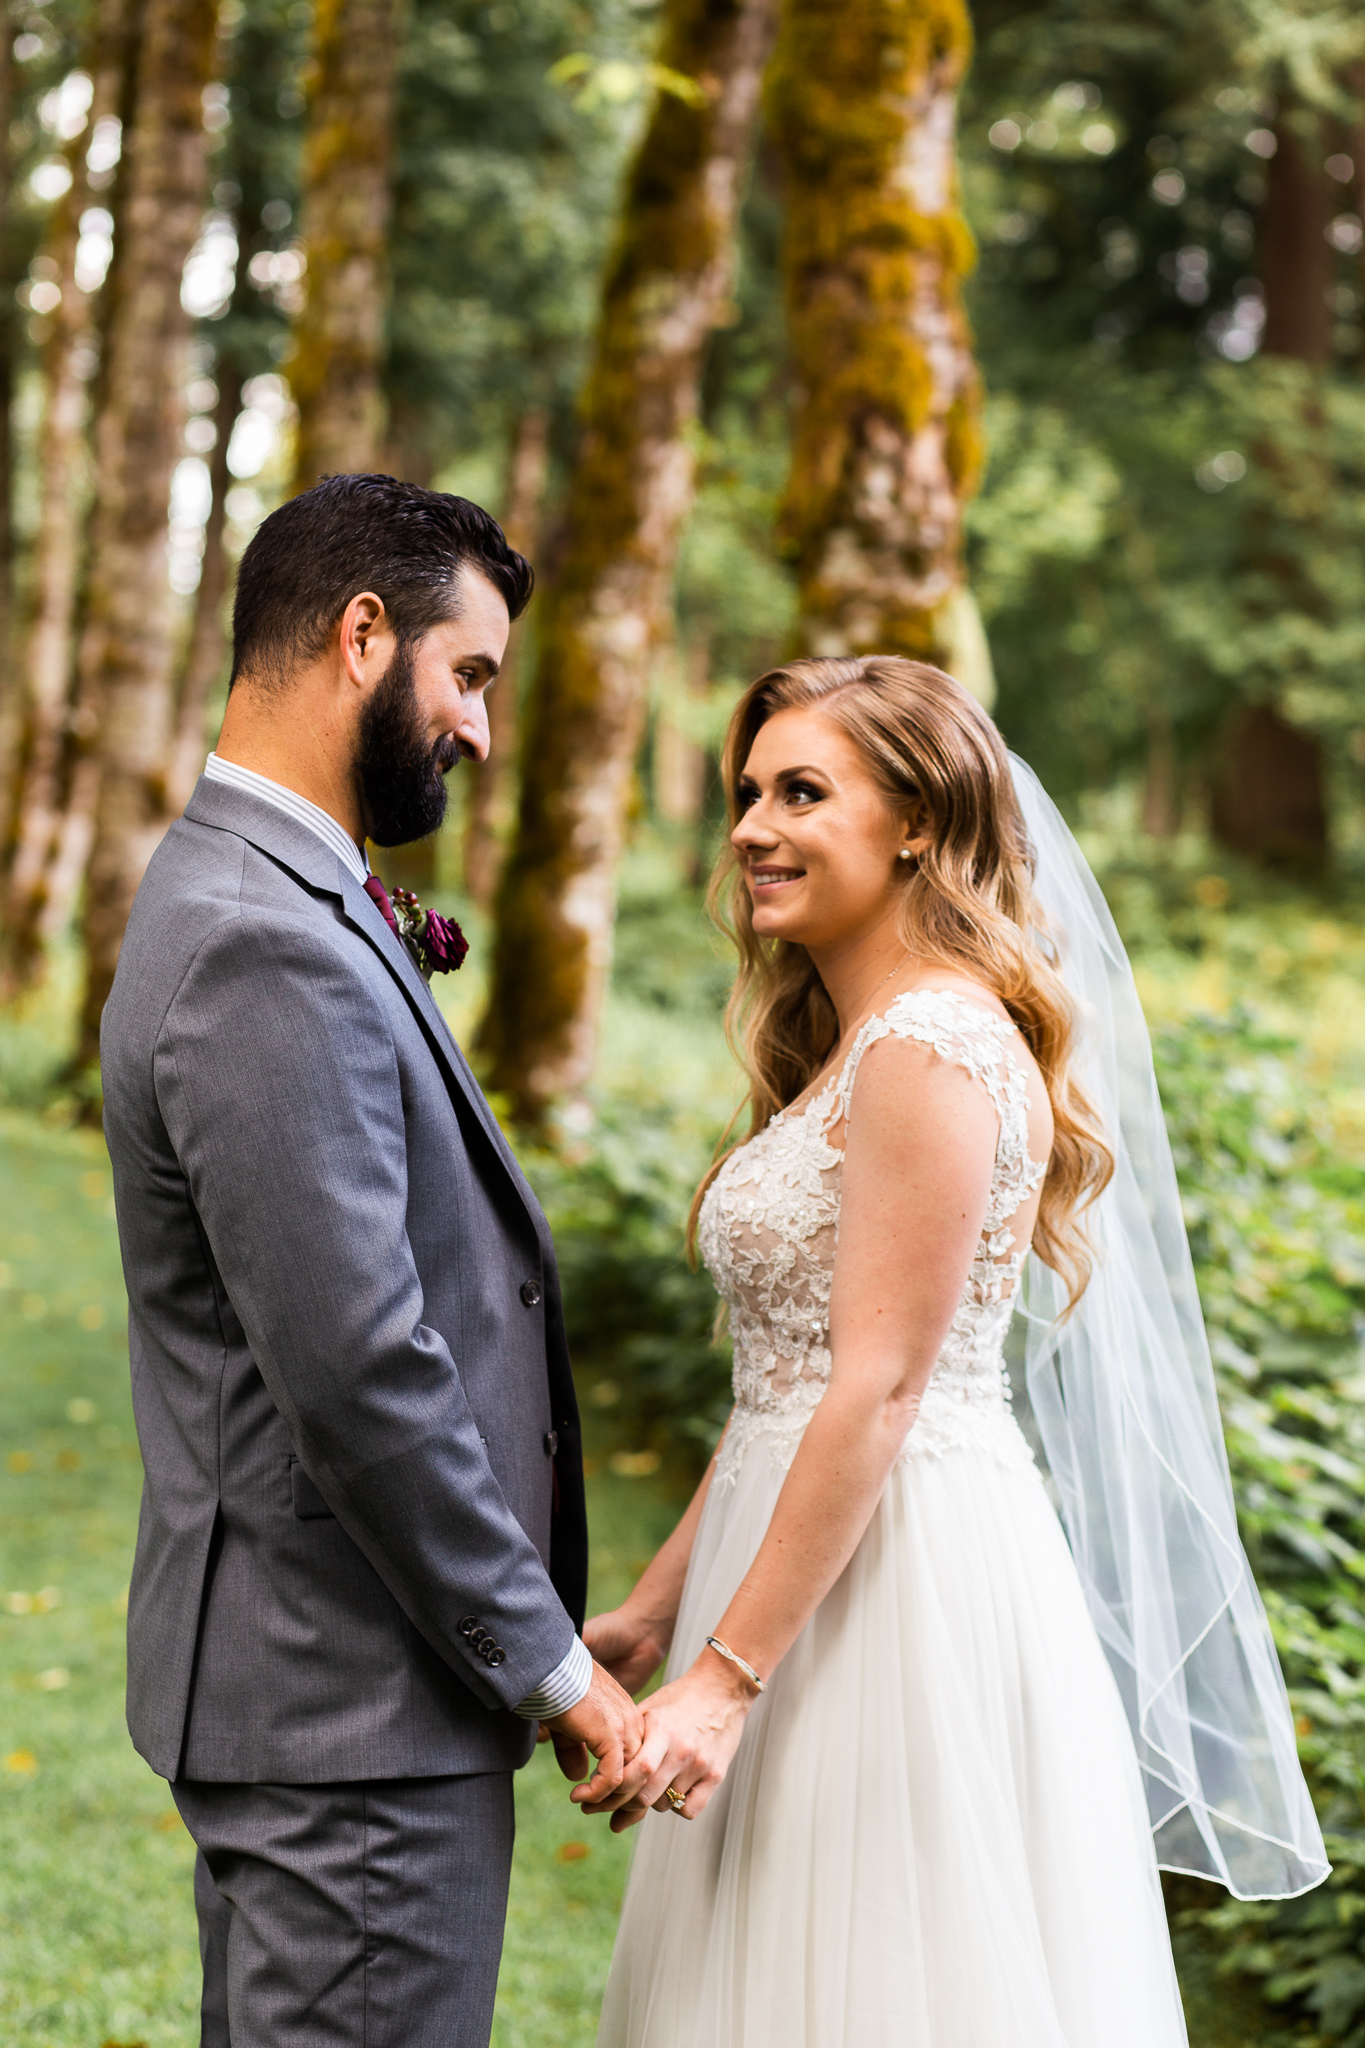 Alayna & Eric - wedding -  Bridal Veil Lakes, OR - Malina Rose Photography-35.jpg